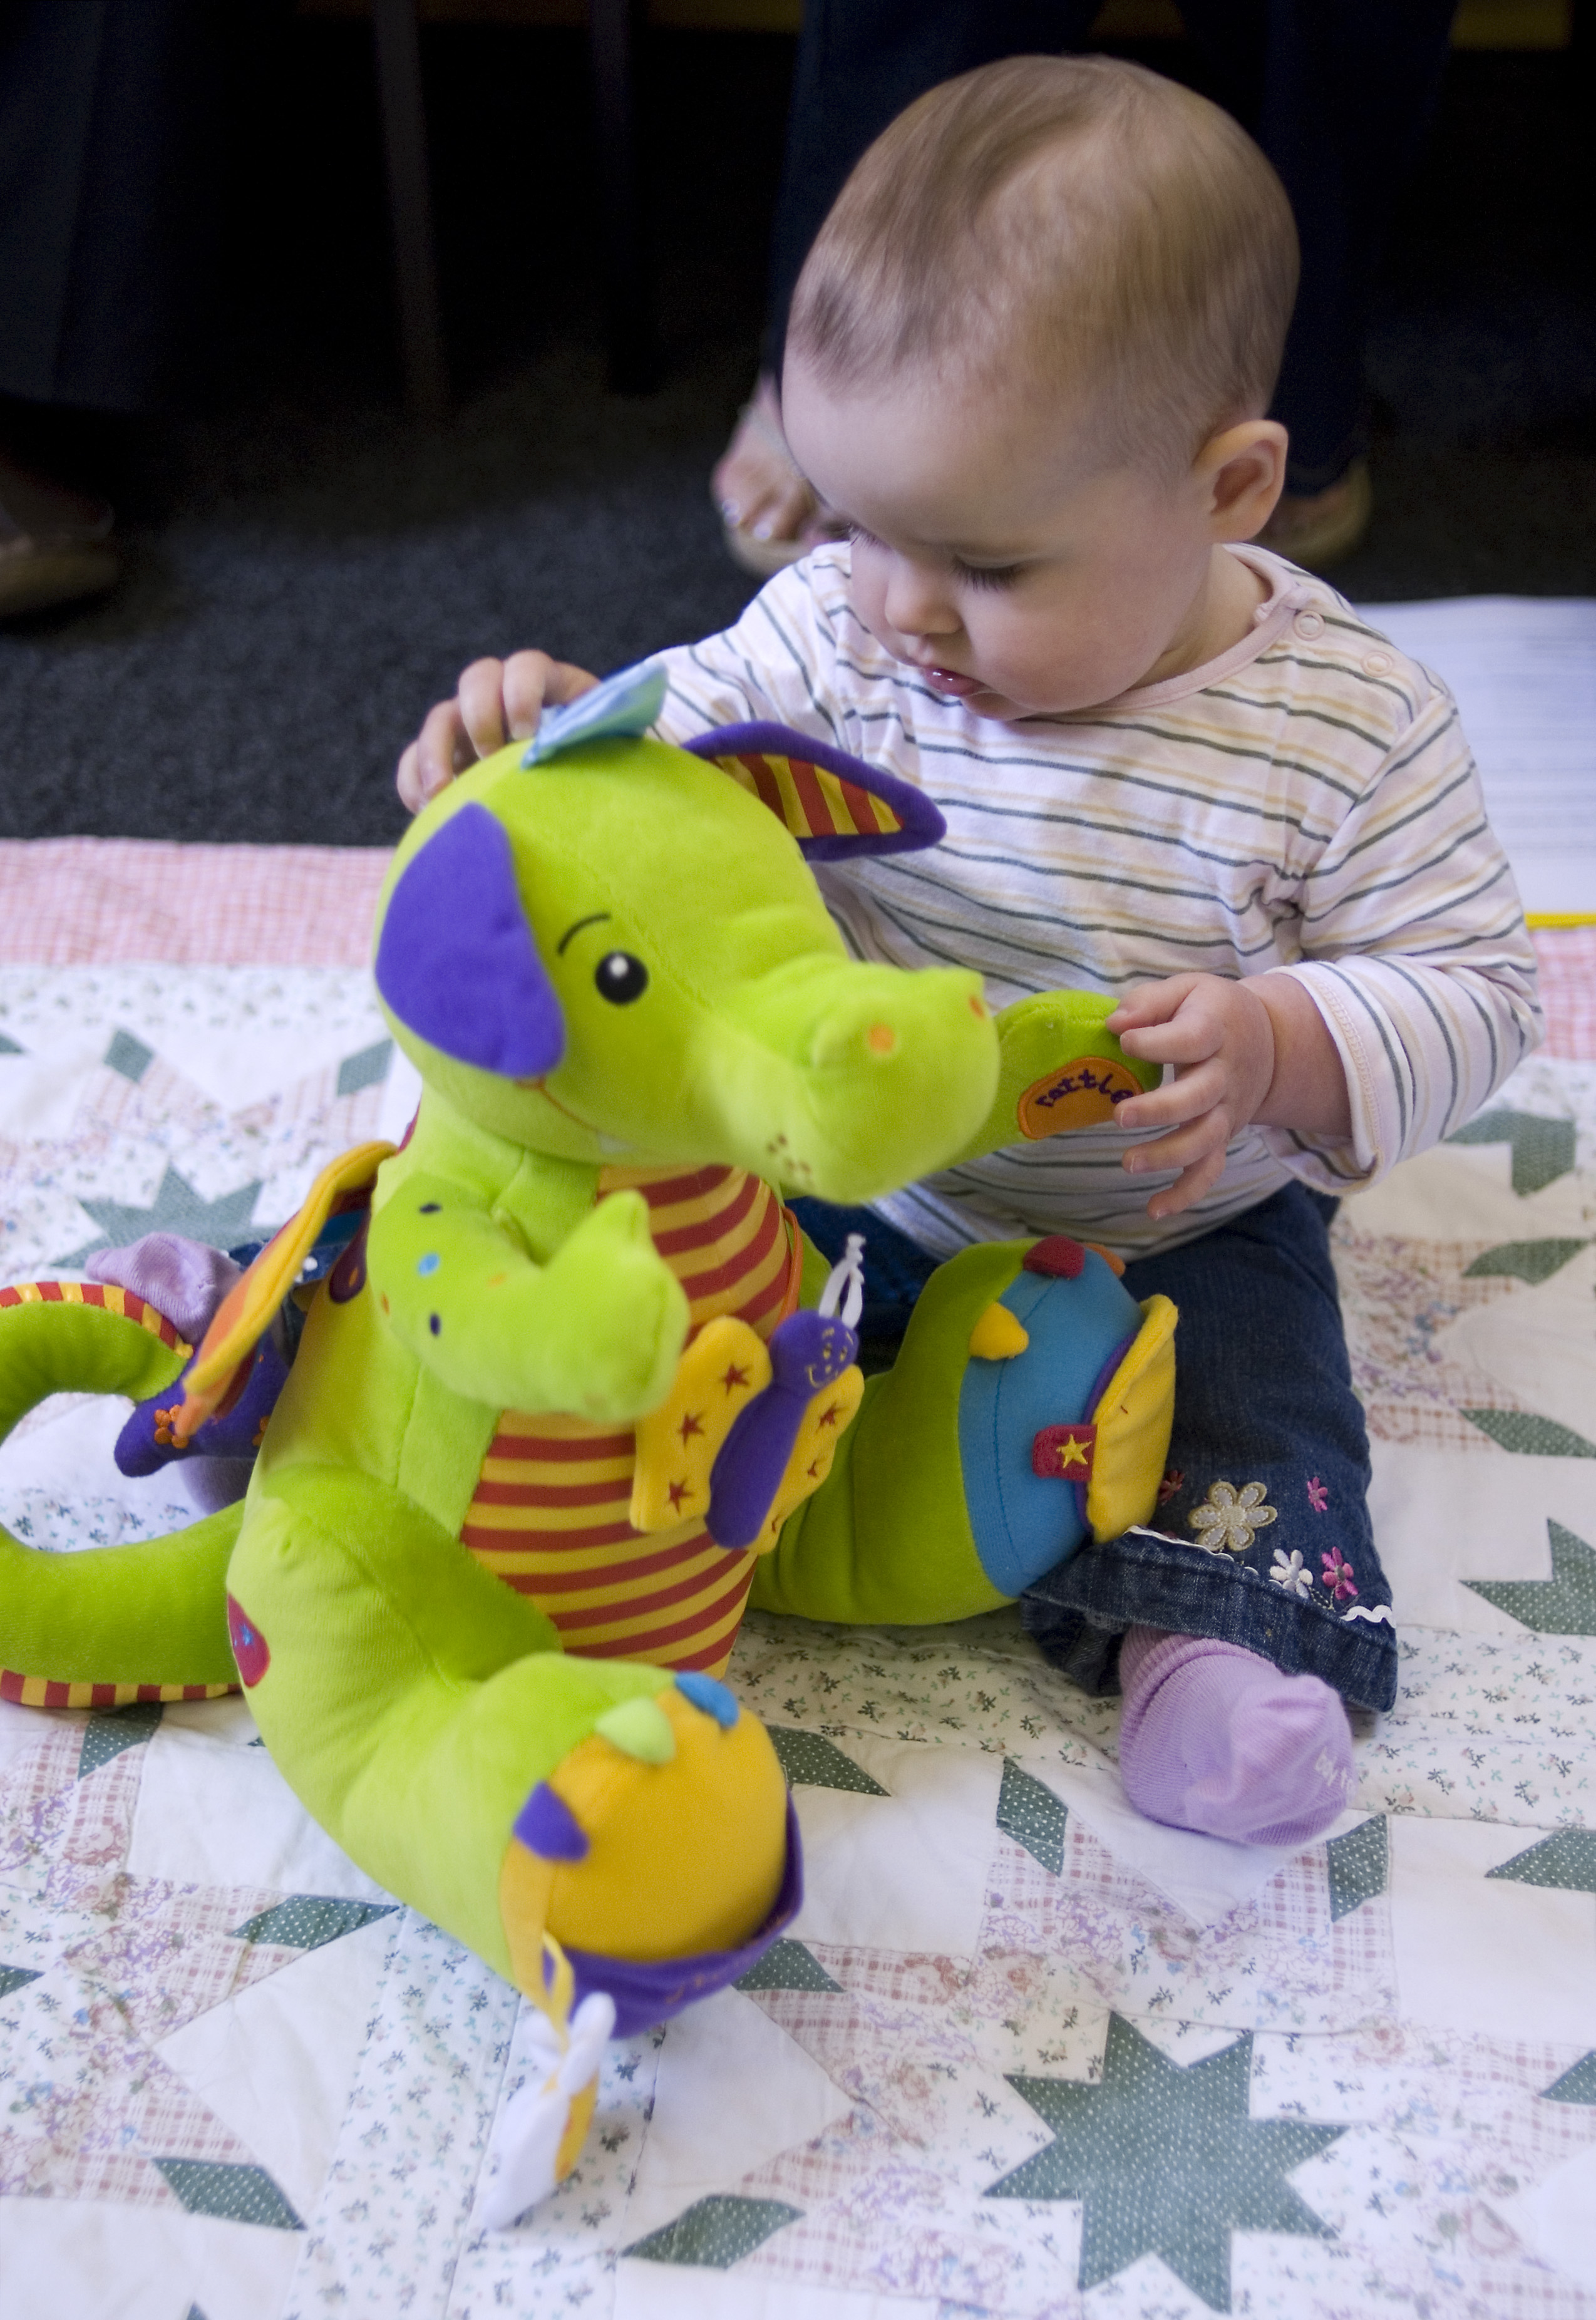 Baby playing with cuddly toy